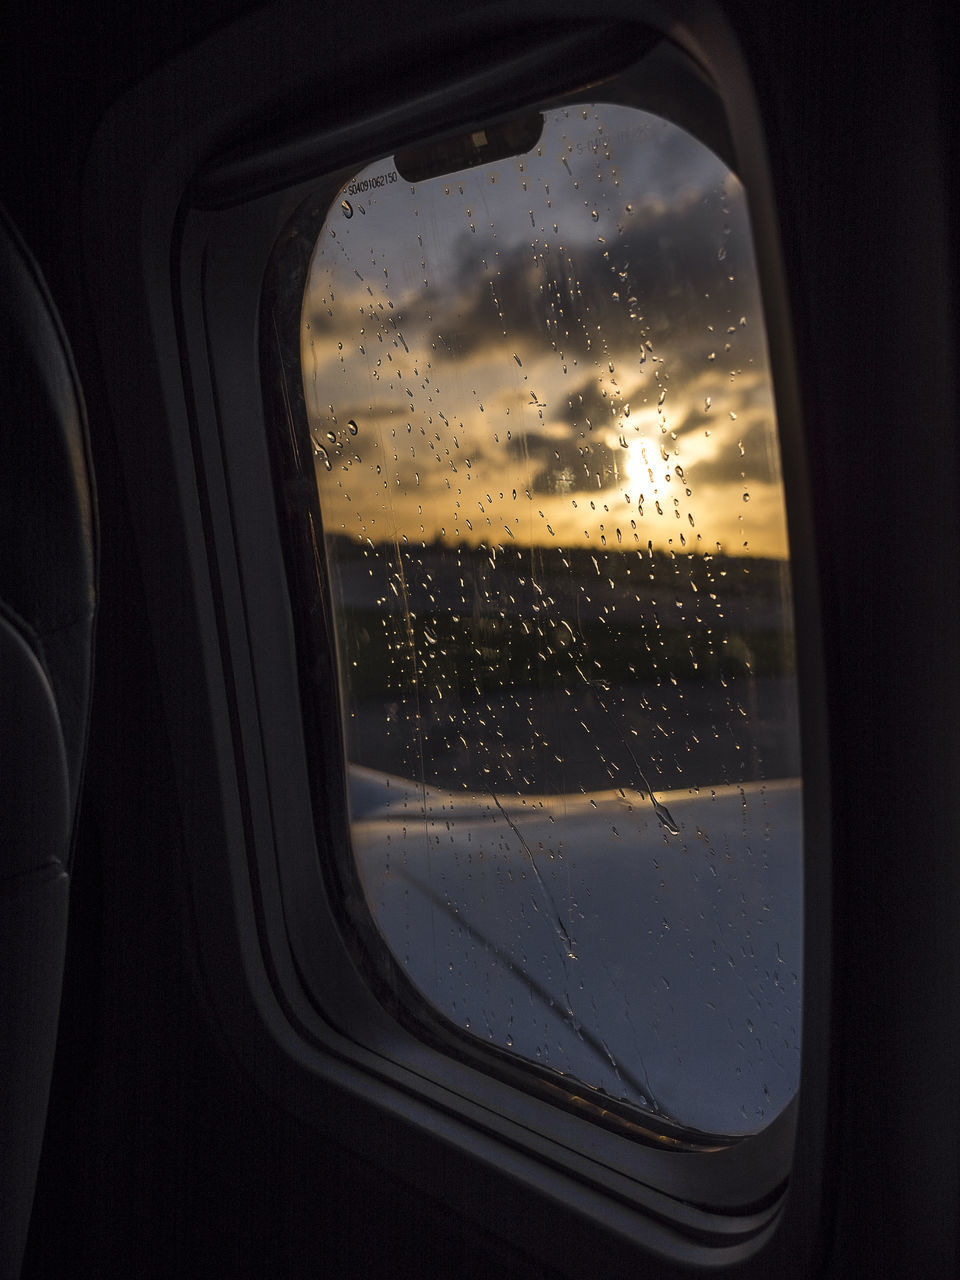 window, glass - material, vehicle interior, water, car interior, drop, cloud - sky, wet, weather, sky, no people, car, indoors, transportation, close-up, land vehicle, nature, day